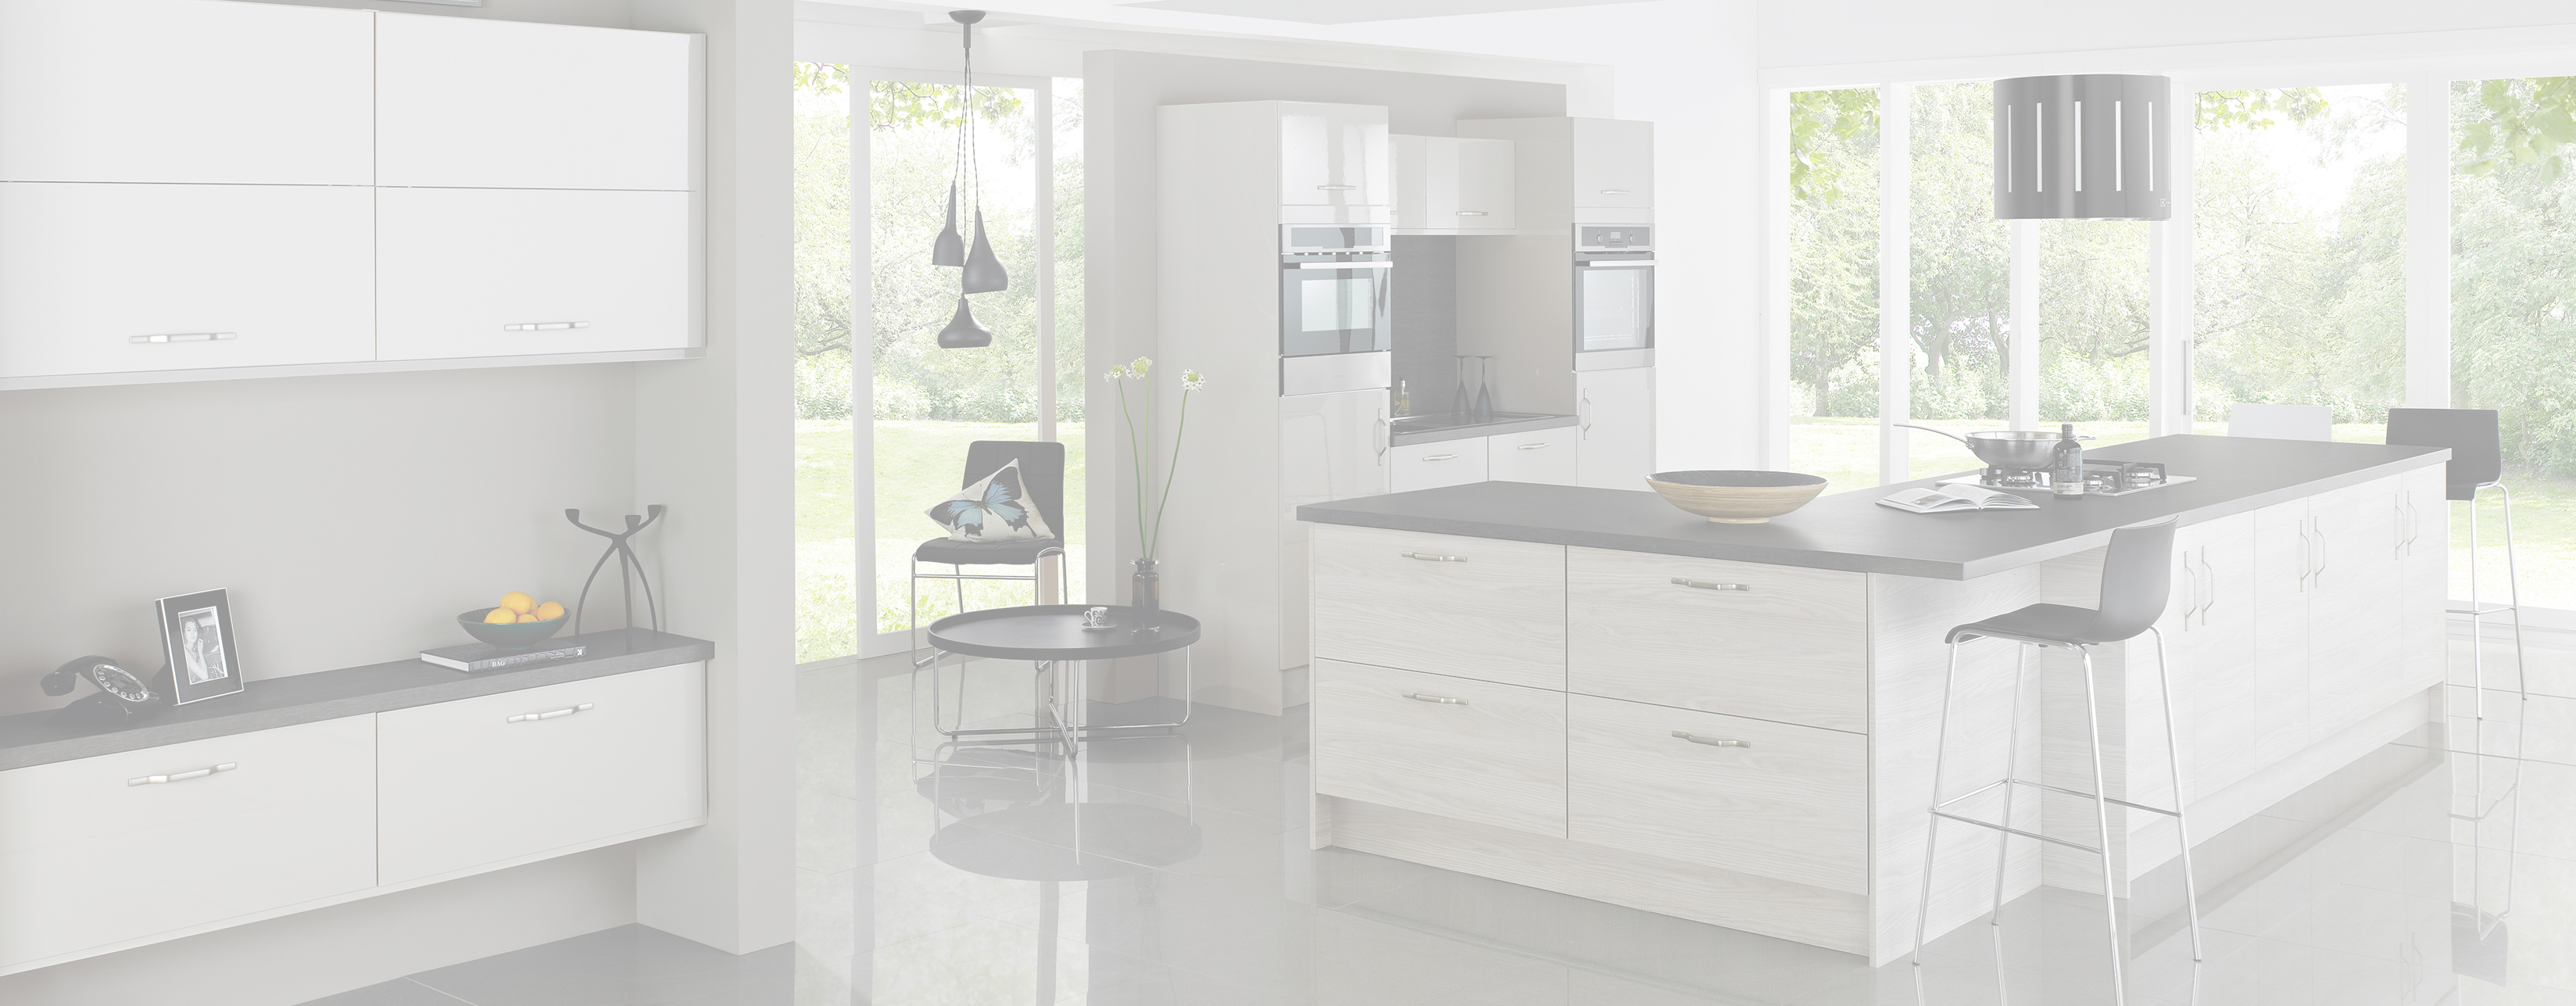 Schreiber Fitted Bedroom Furniture Fitted Kitchens Bedrooms Exeter Deviell Kitchen Bedroom